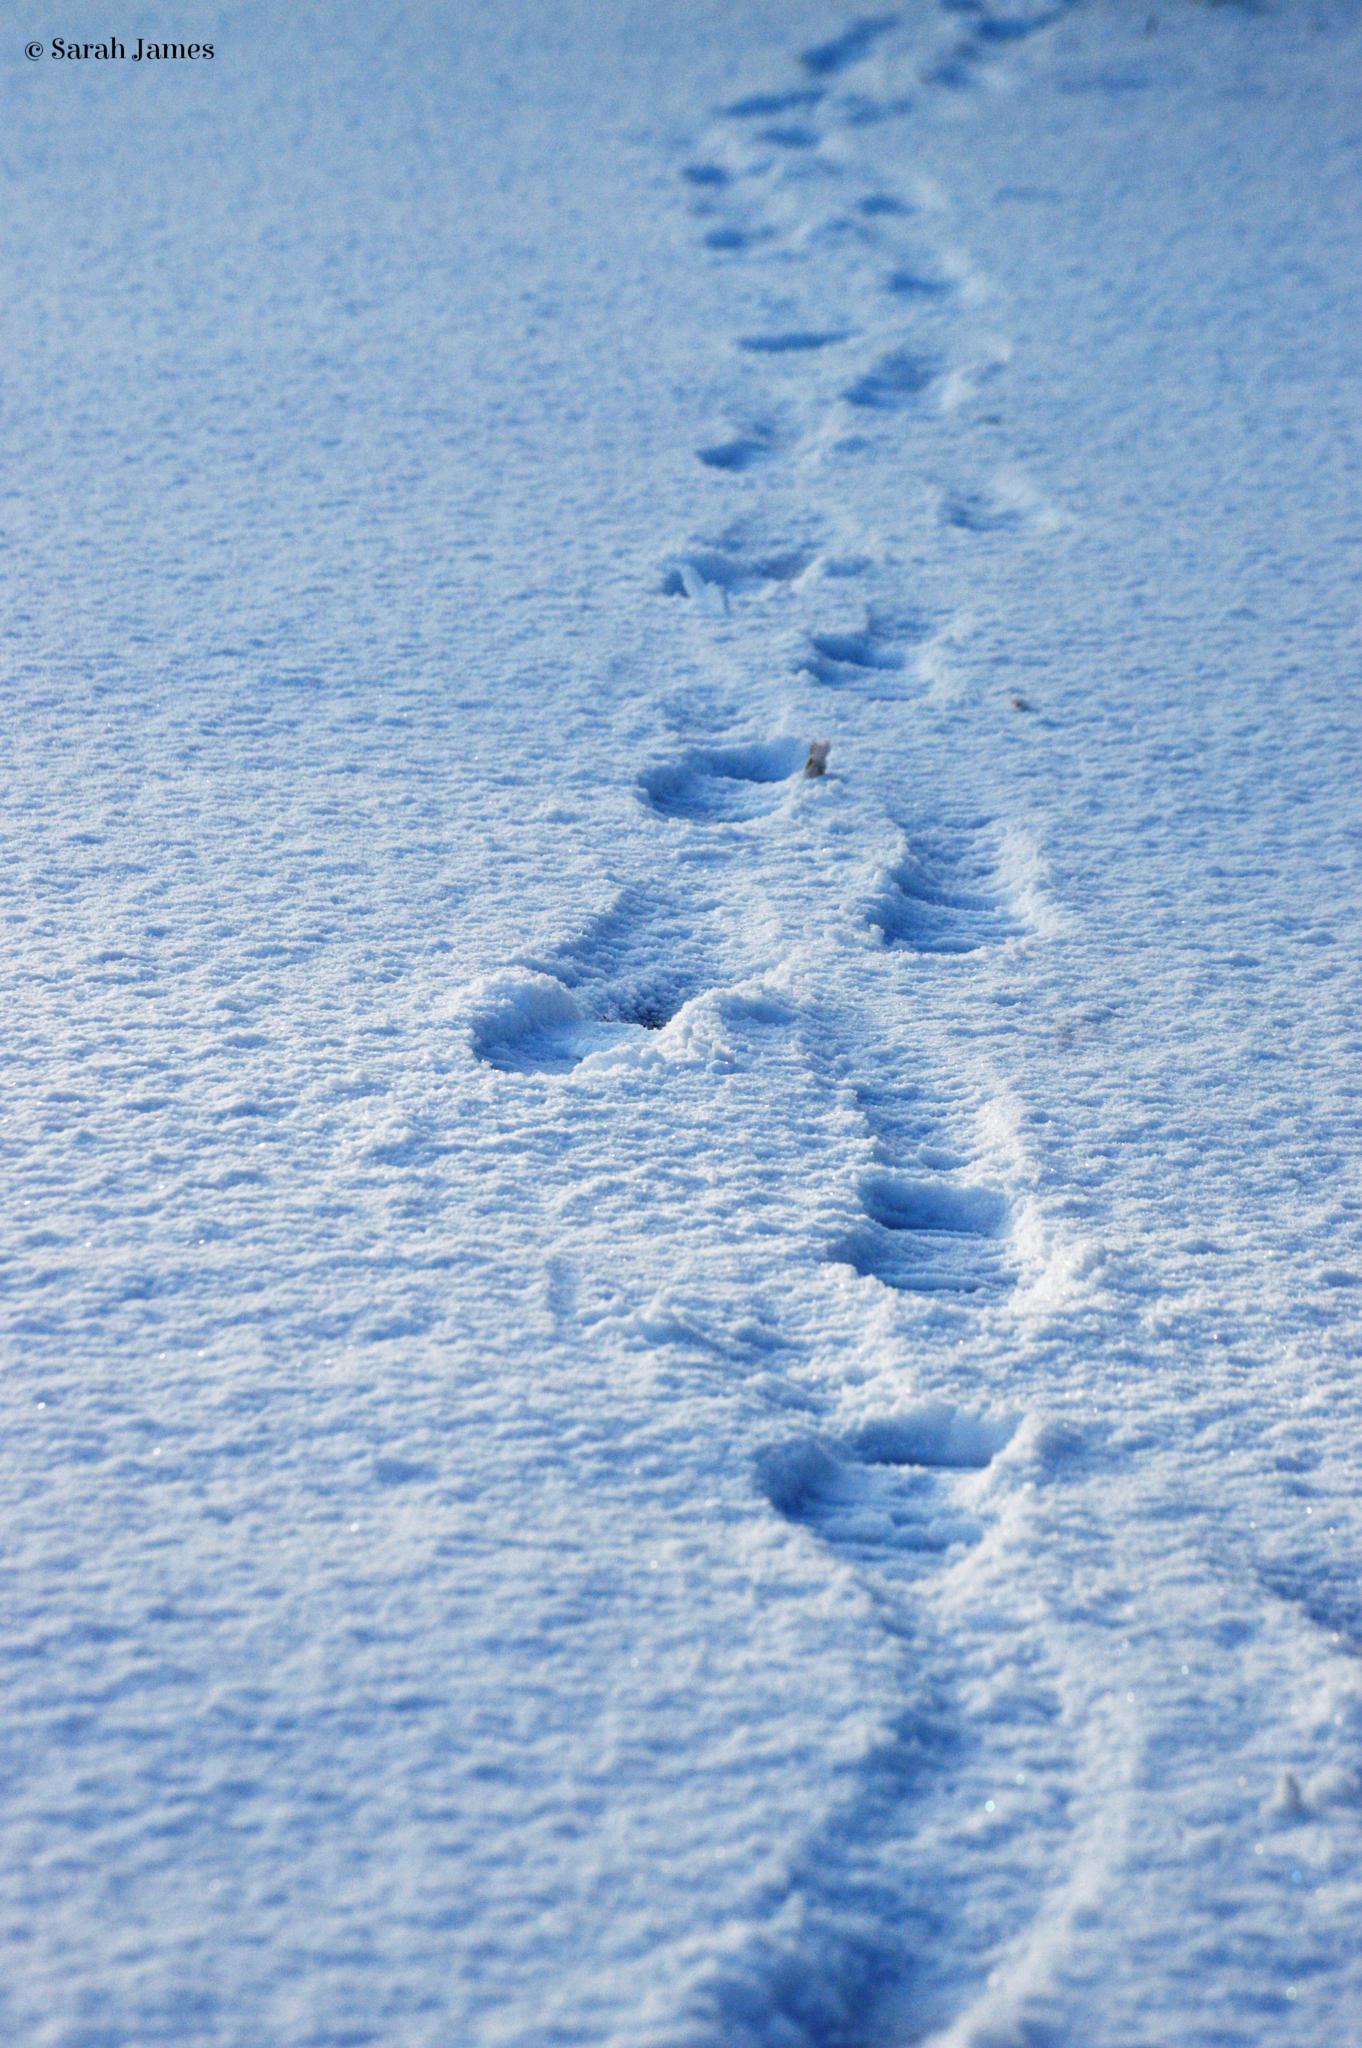 Footsteps in the snow by Sarah James